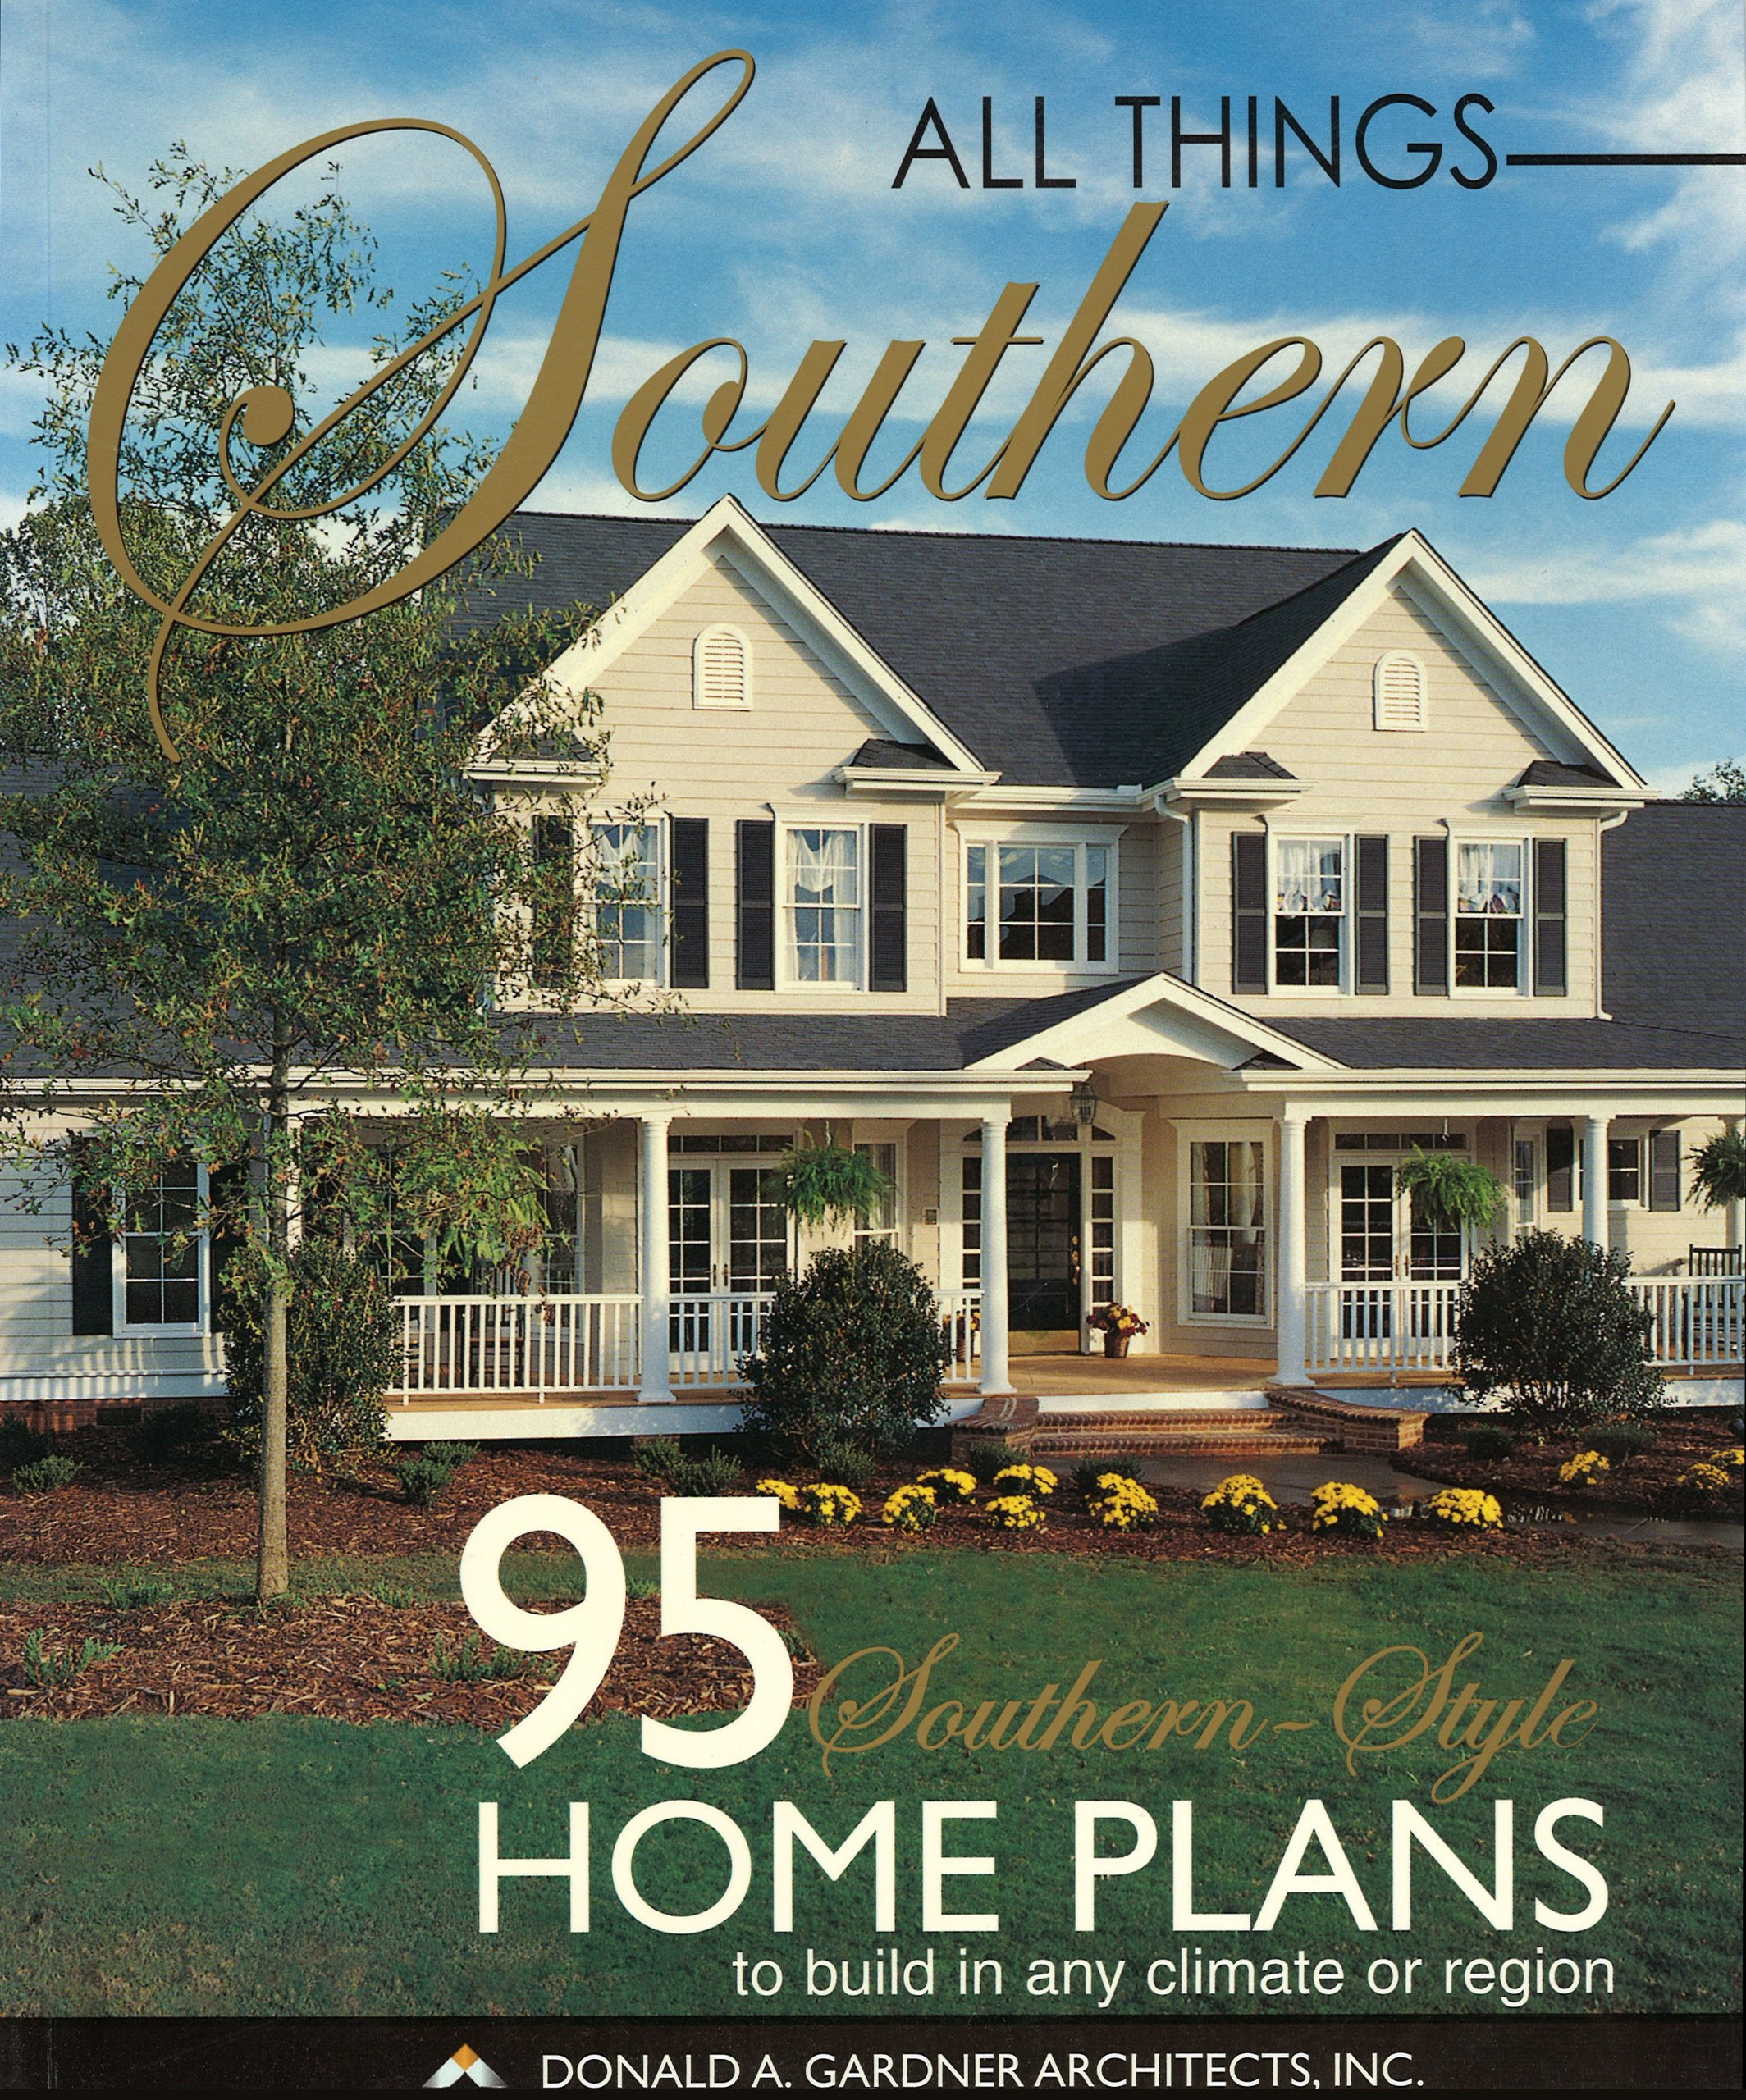 Buy All Things Southern - Home Plans: 95 Southern-Style Home Plans